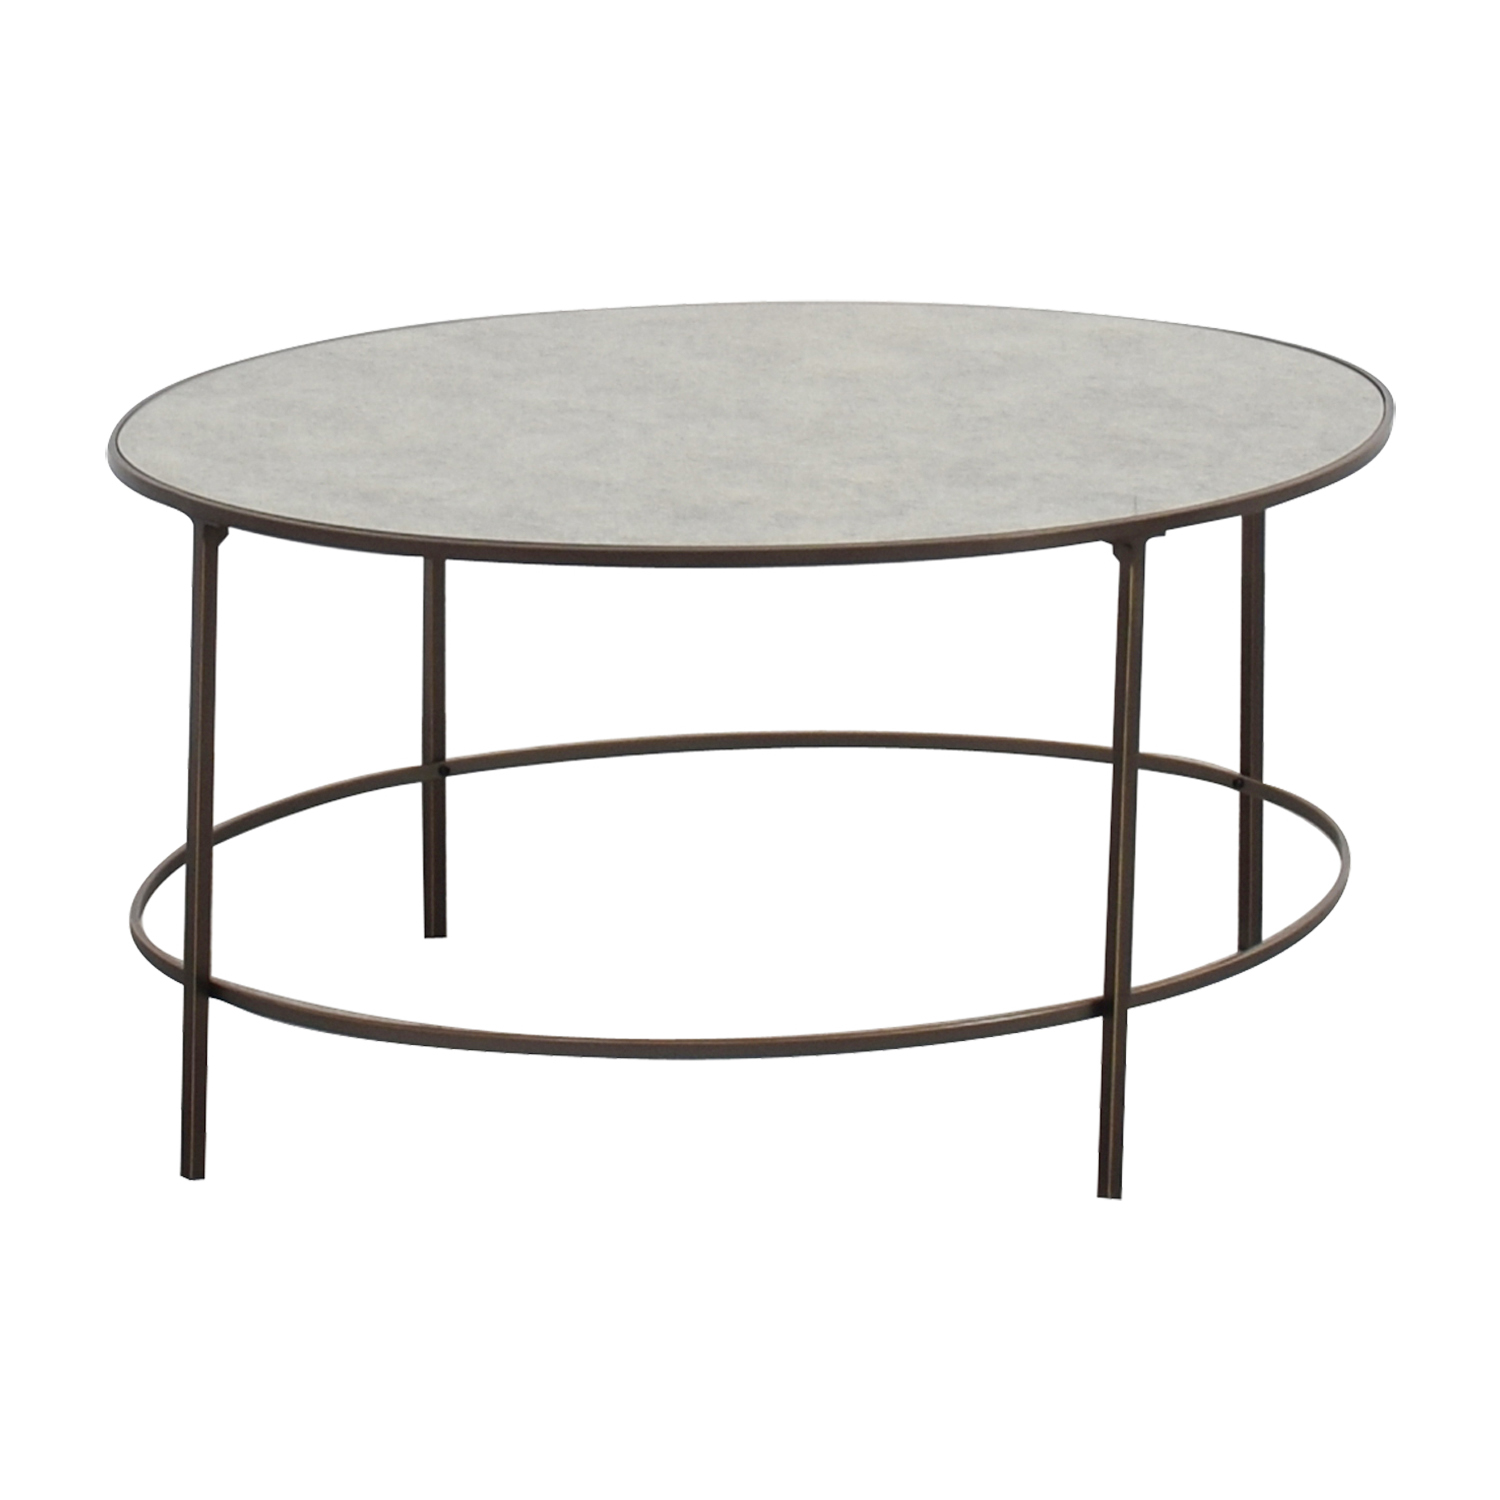 OFF West Elm West Elm Oval Metal and Mirror Coffee Table